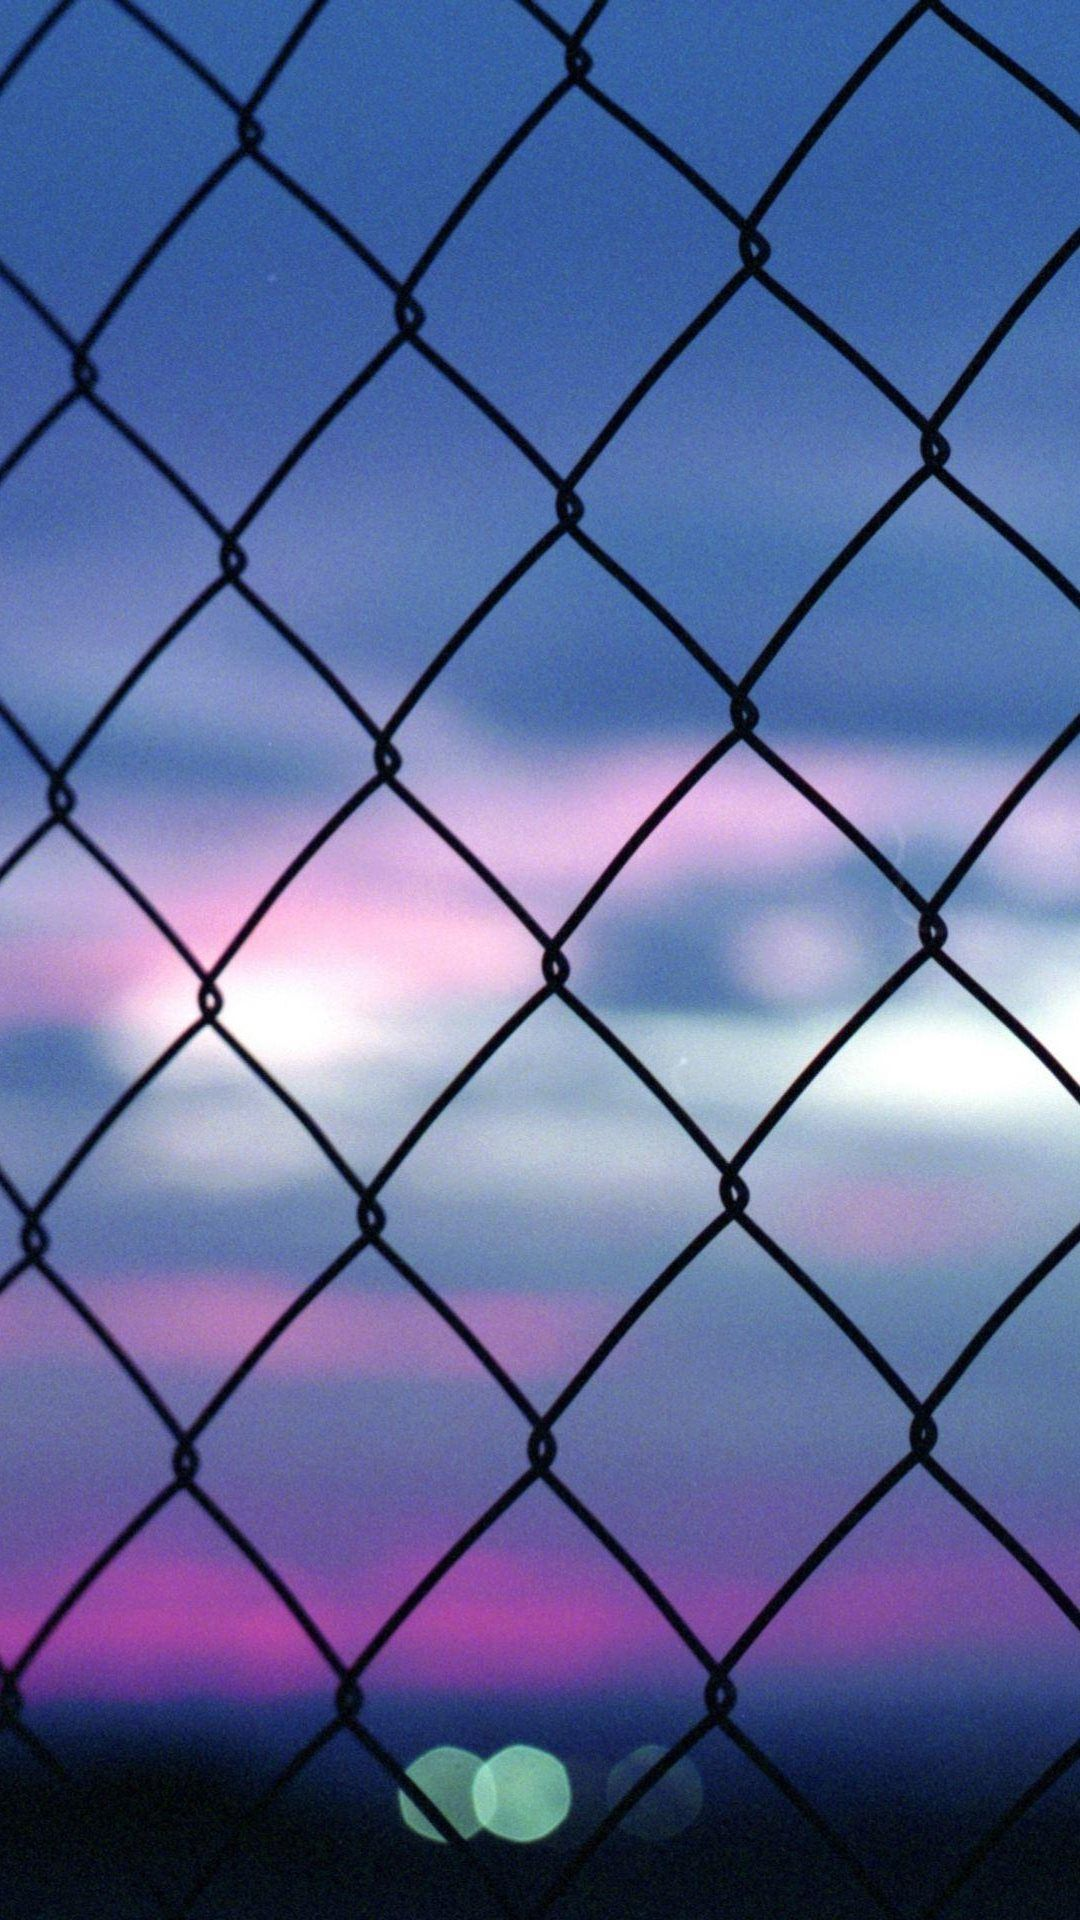 Download Looking At Freedom Fence iPhone 6 Plus HD Wallpaper ...